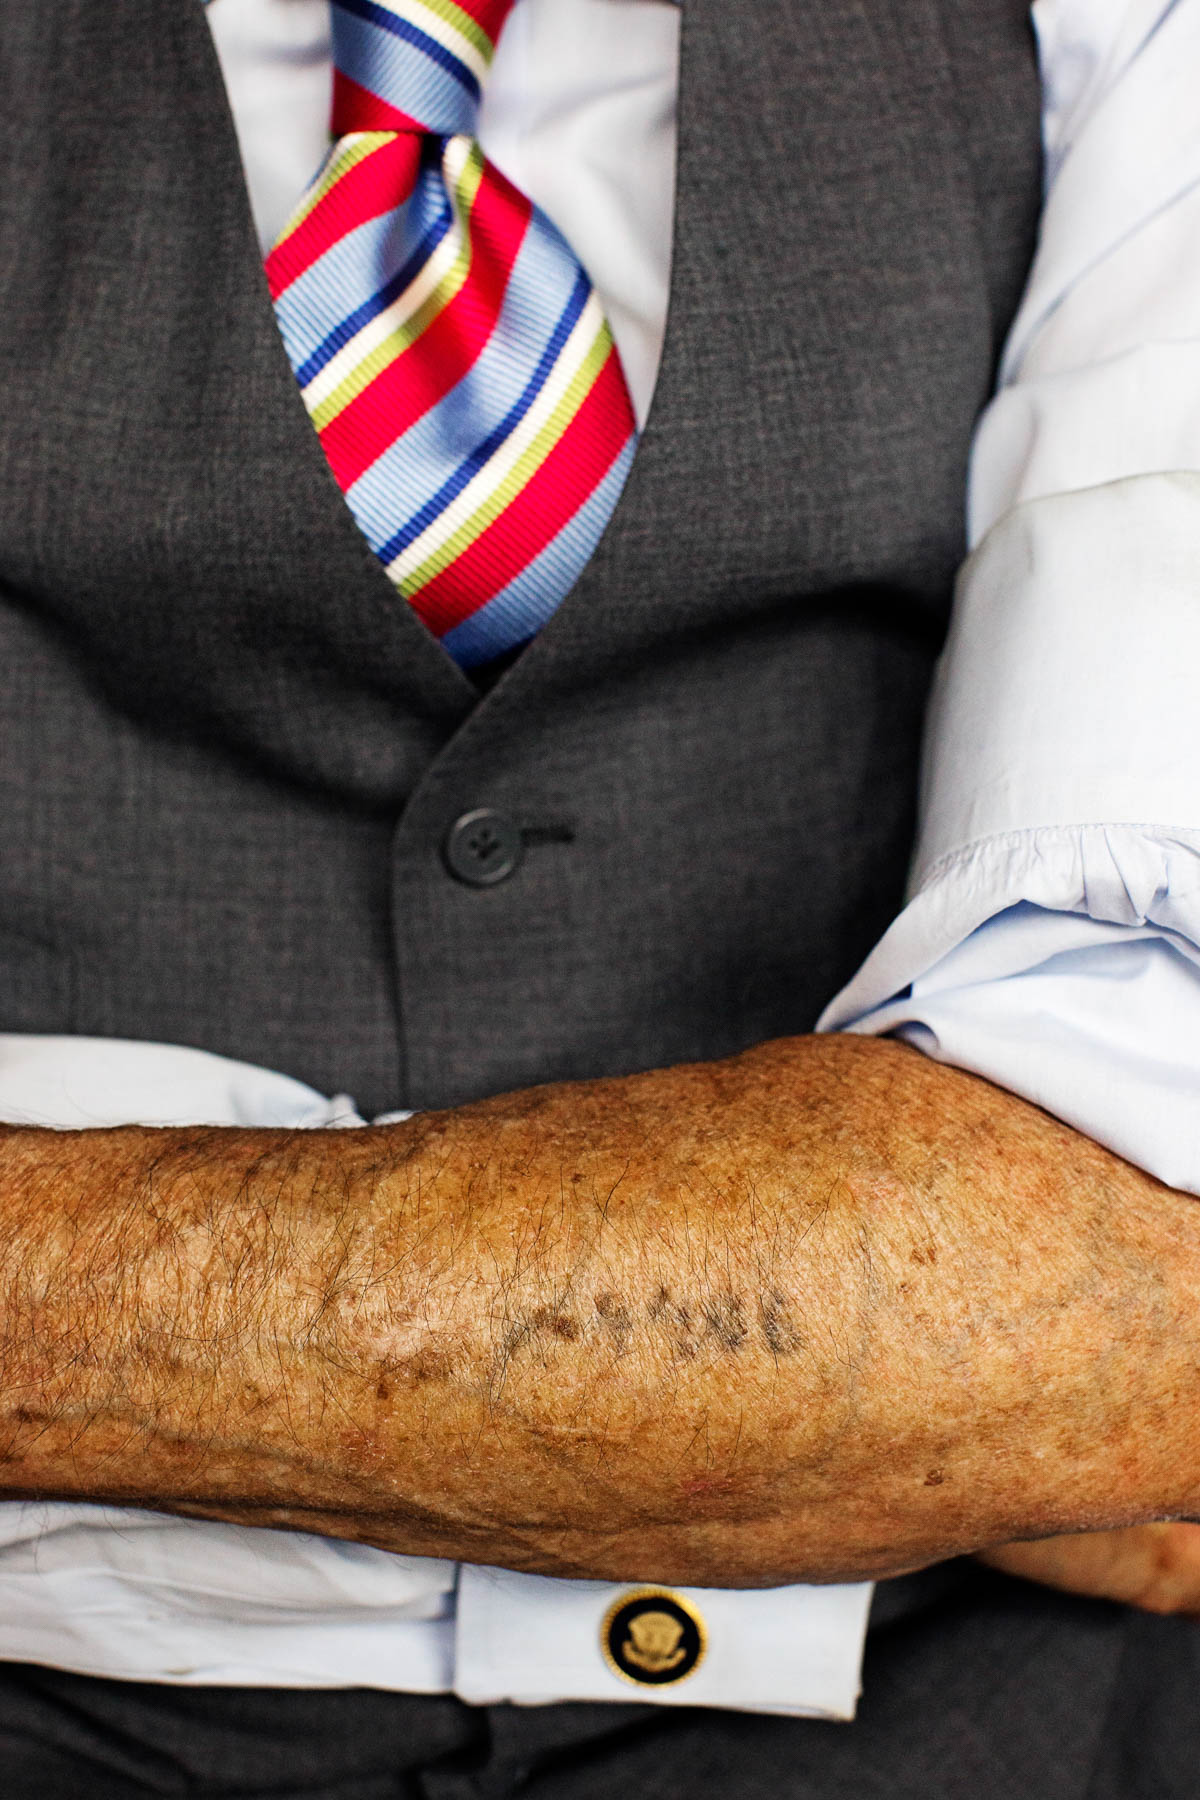 Man crossing his tattooed arm over his suit vest and tie (© Getty Images/Joseph Victor Stefanchik)